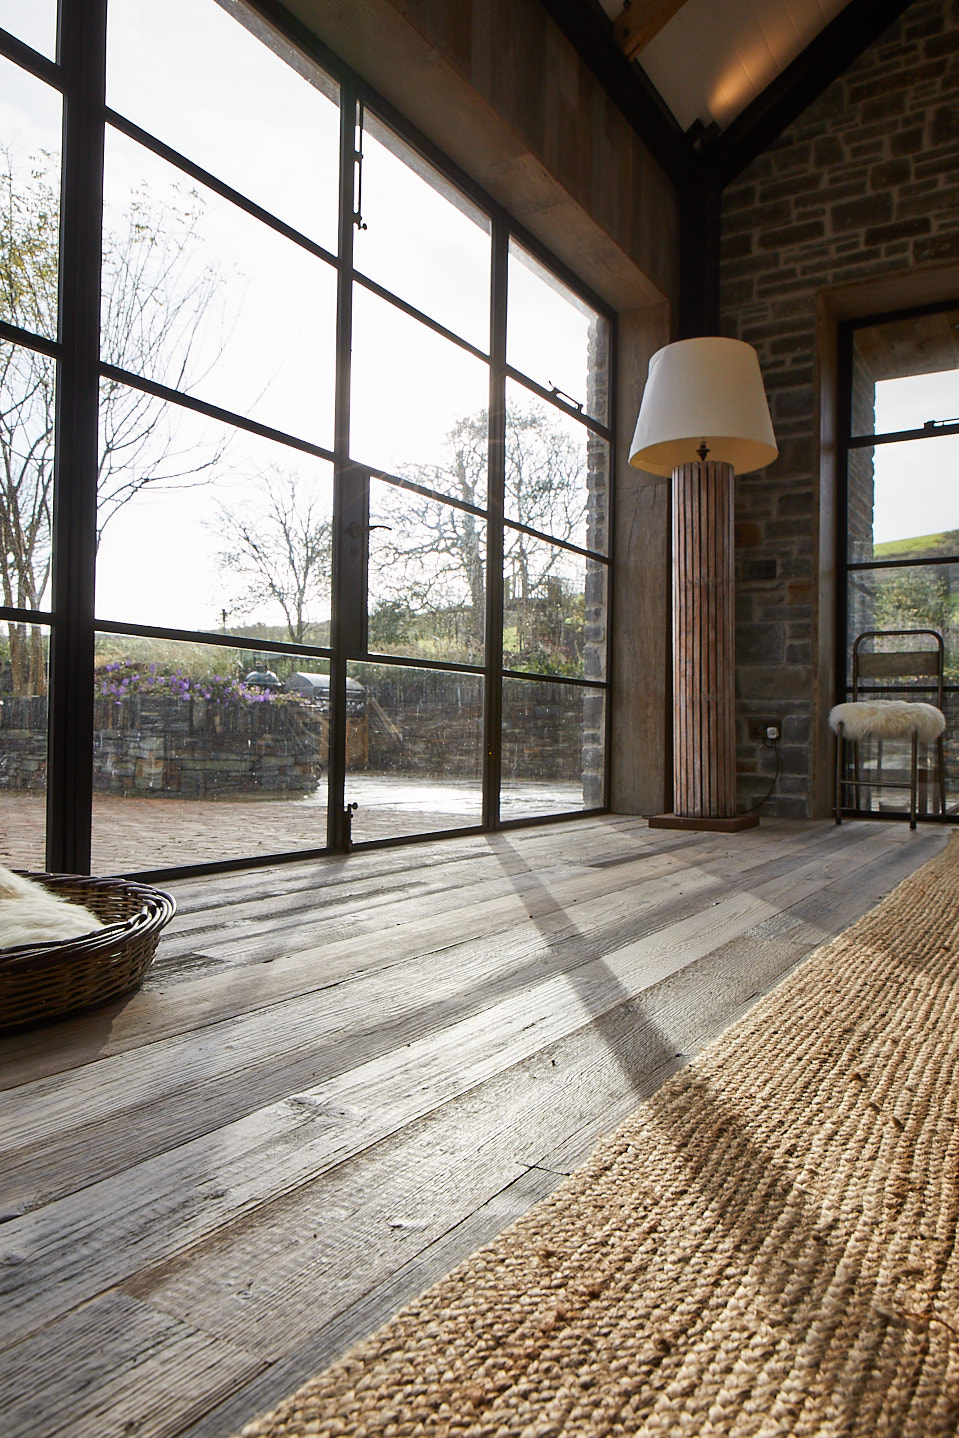 Shadow of crittall door shines across reclaimed wood floor boards and rustic rug